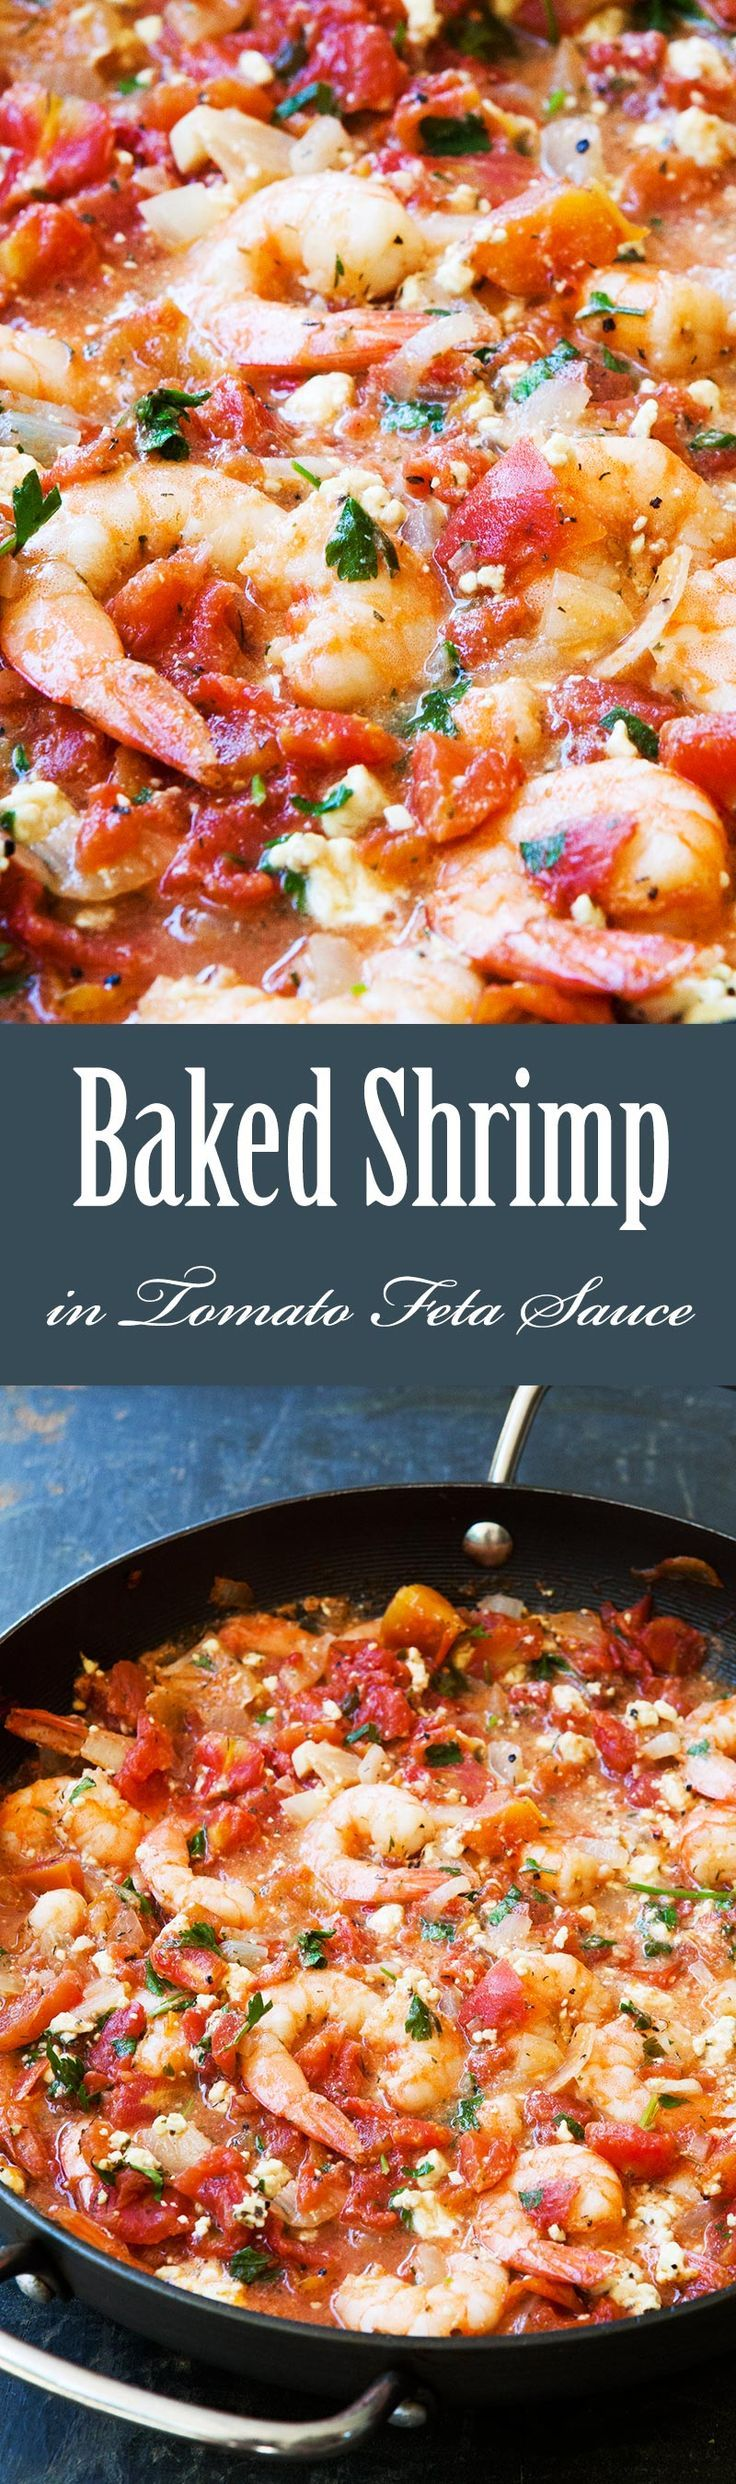 Quick, easy, ONE pot! Shrimp baked in tomato sauce with onions, garlic, and feta cheese. Takes 30 min to make. So GOOD!